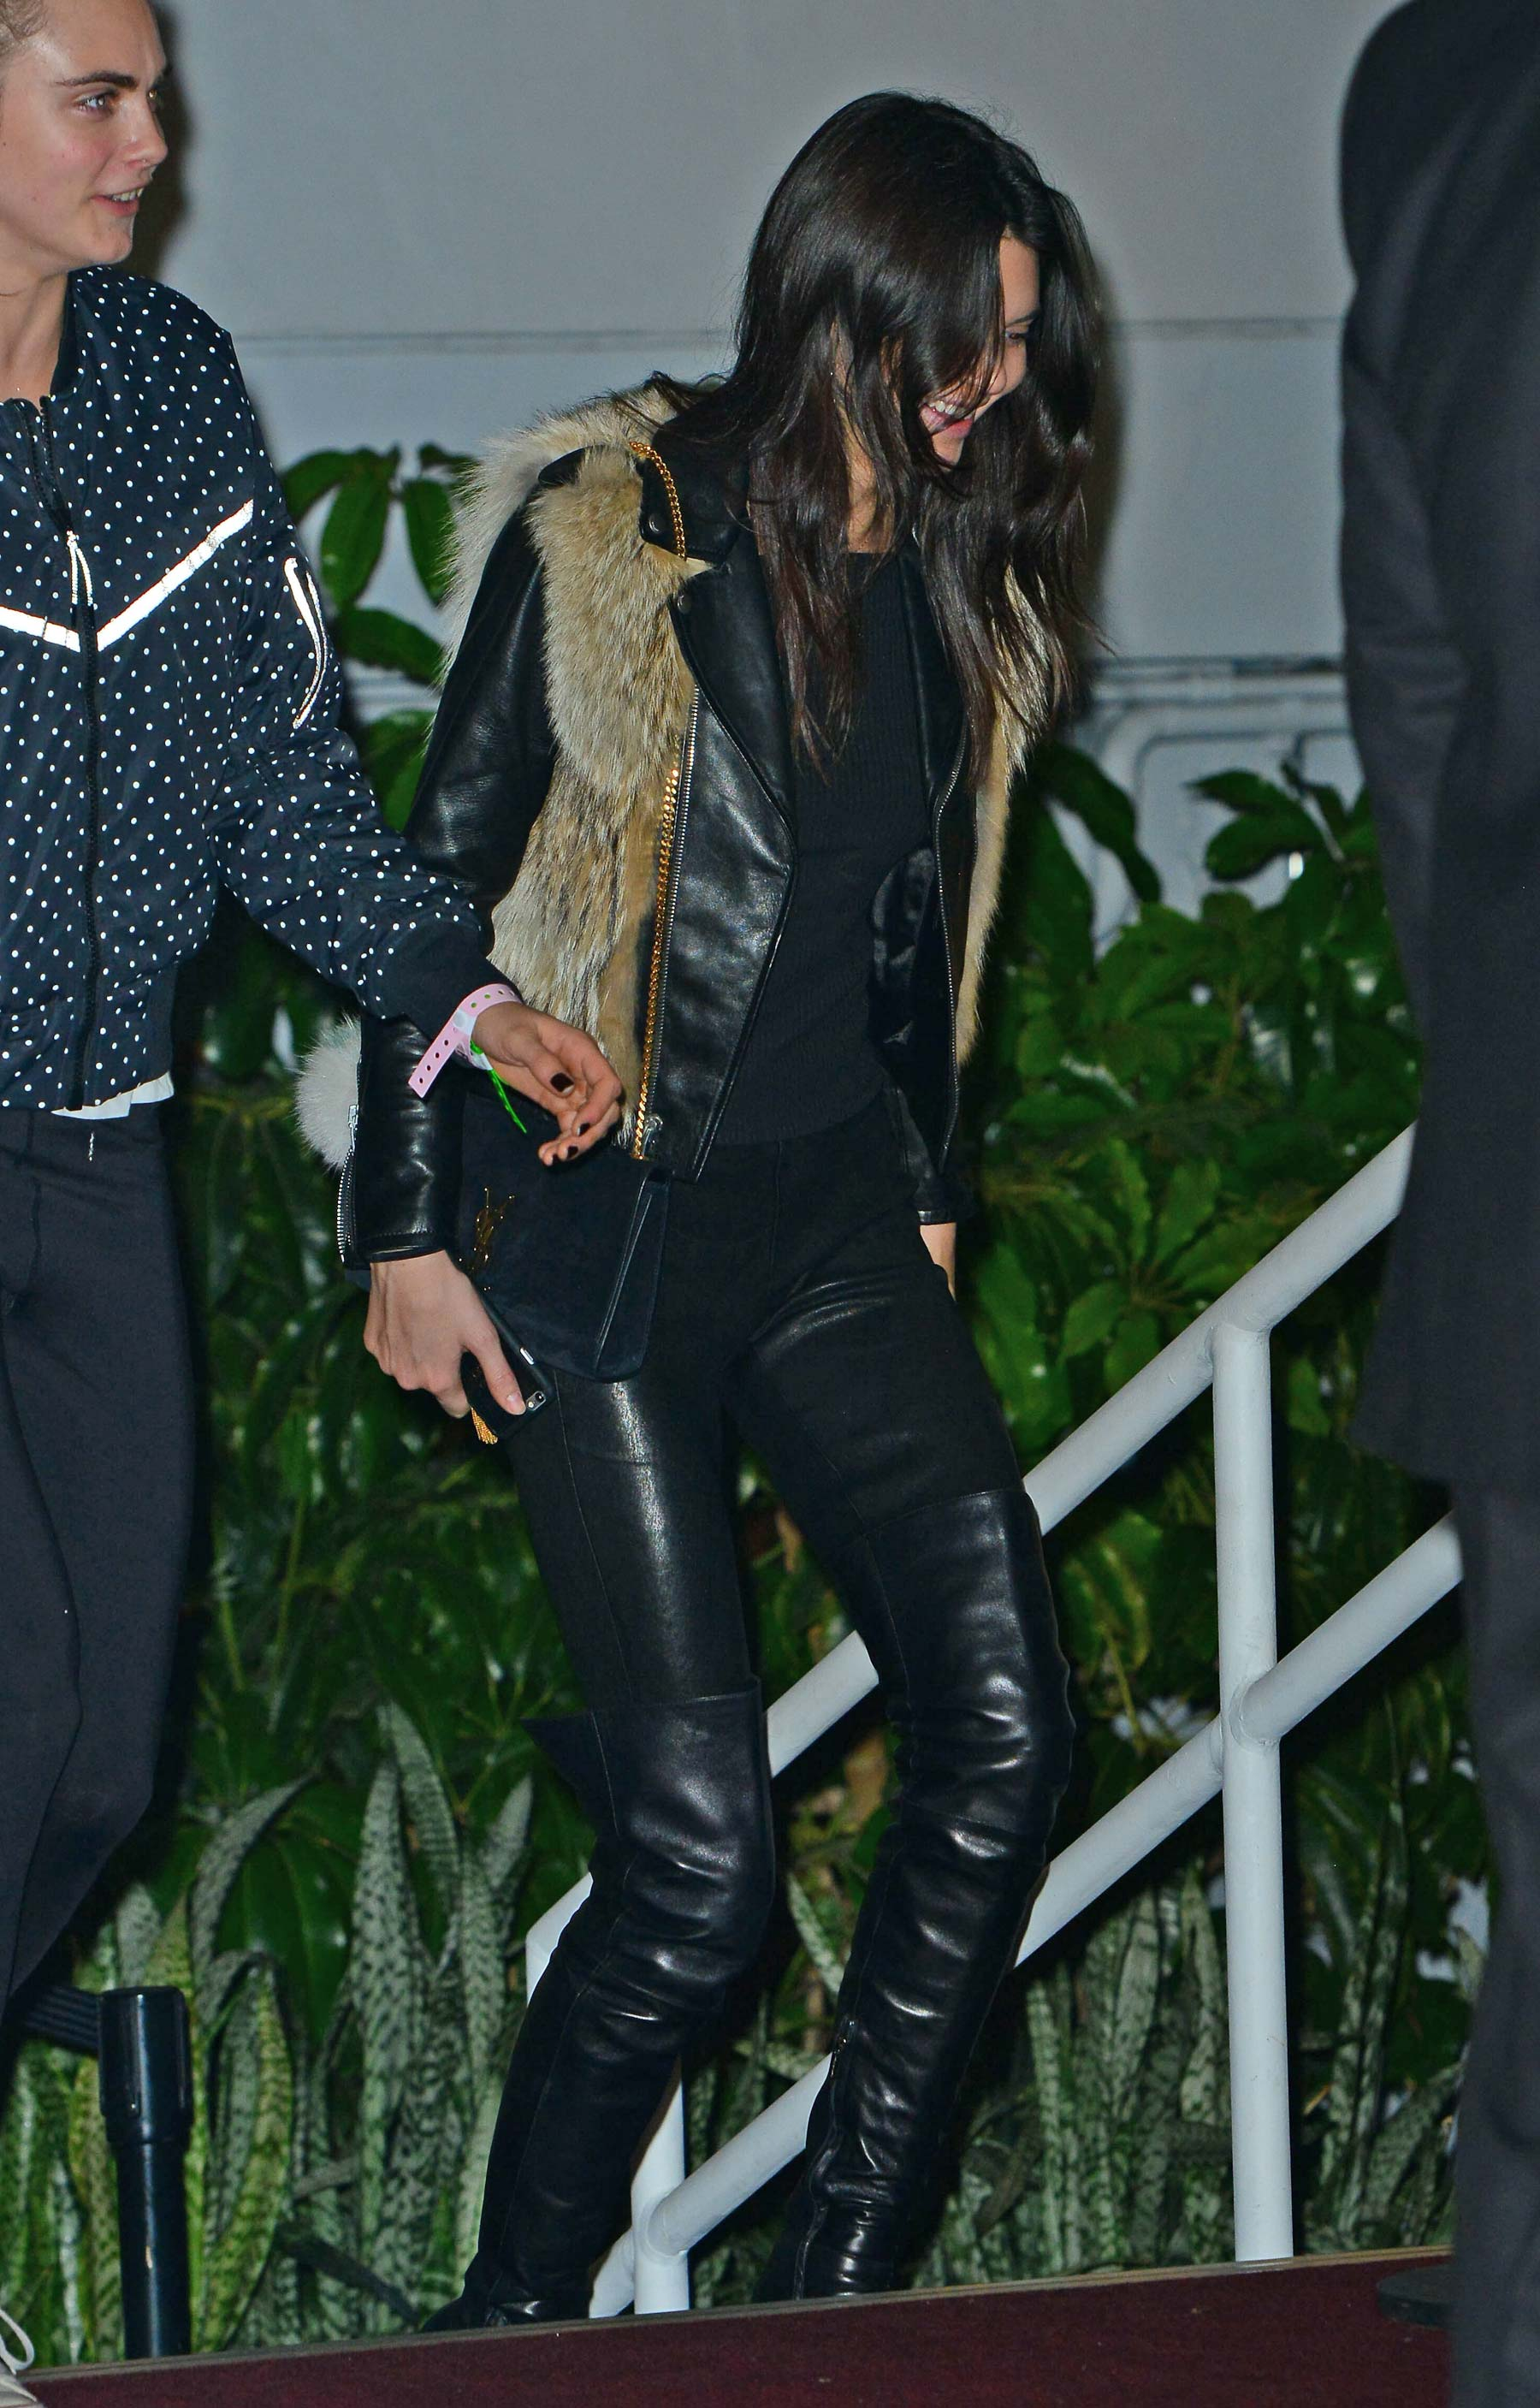 Kendall Jenner leaving The Weeknd's concert in LA